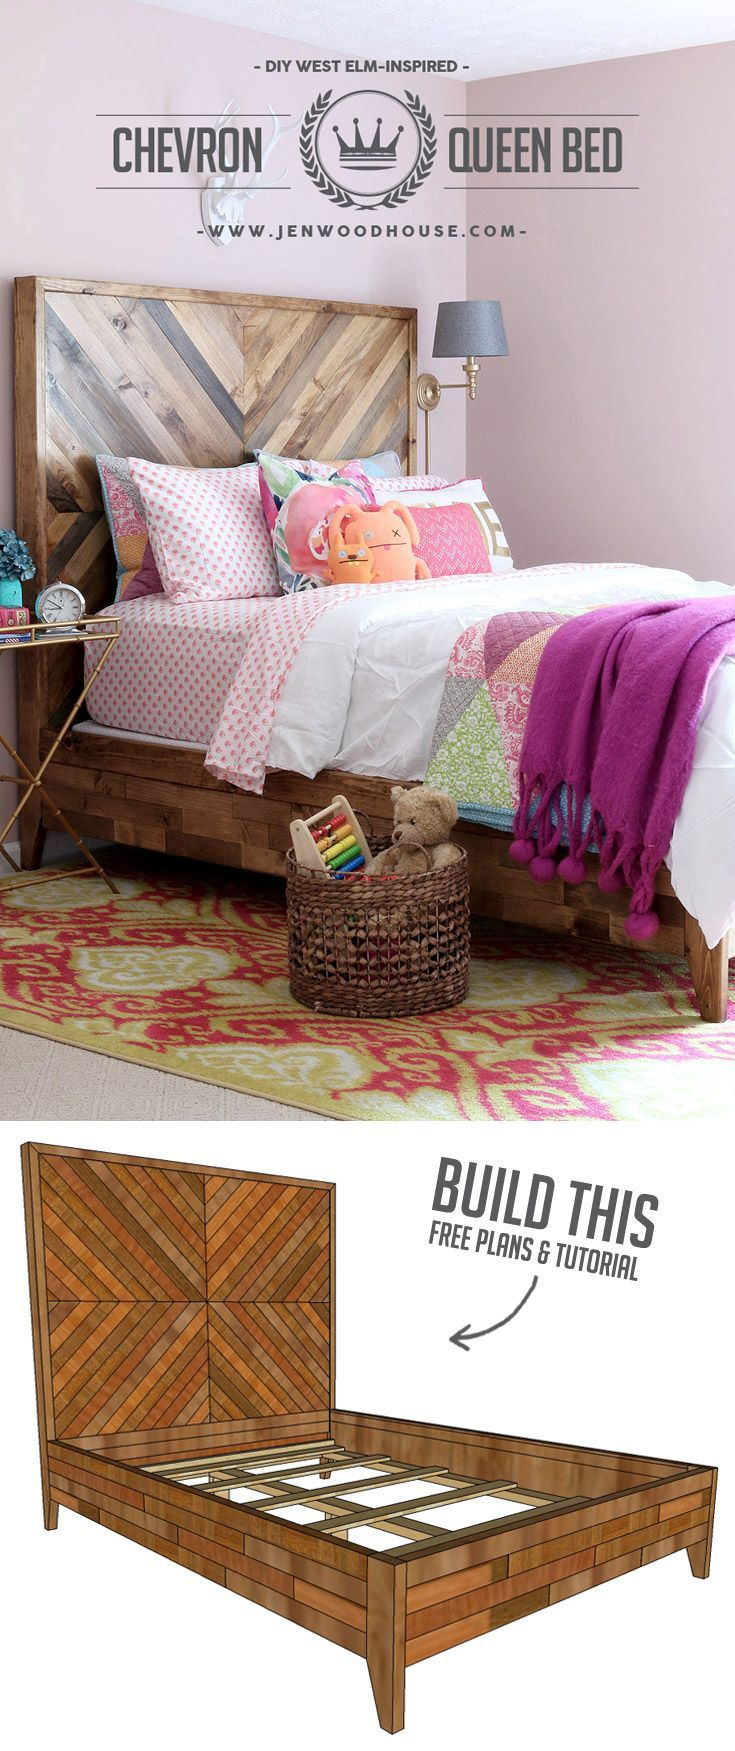 LOVE THIS! How to build a DIY West Elm Alexa Reclaimed Wood Bed for under $200! Free plans and tutorial